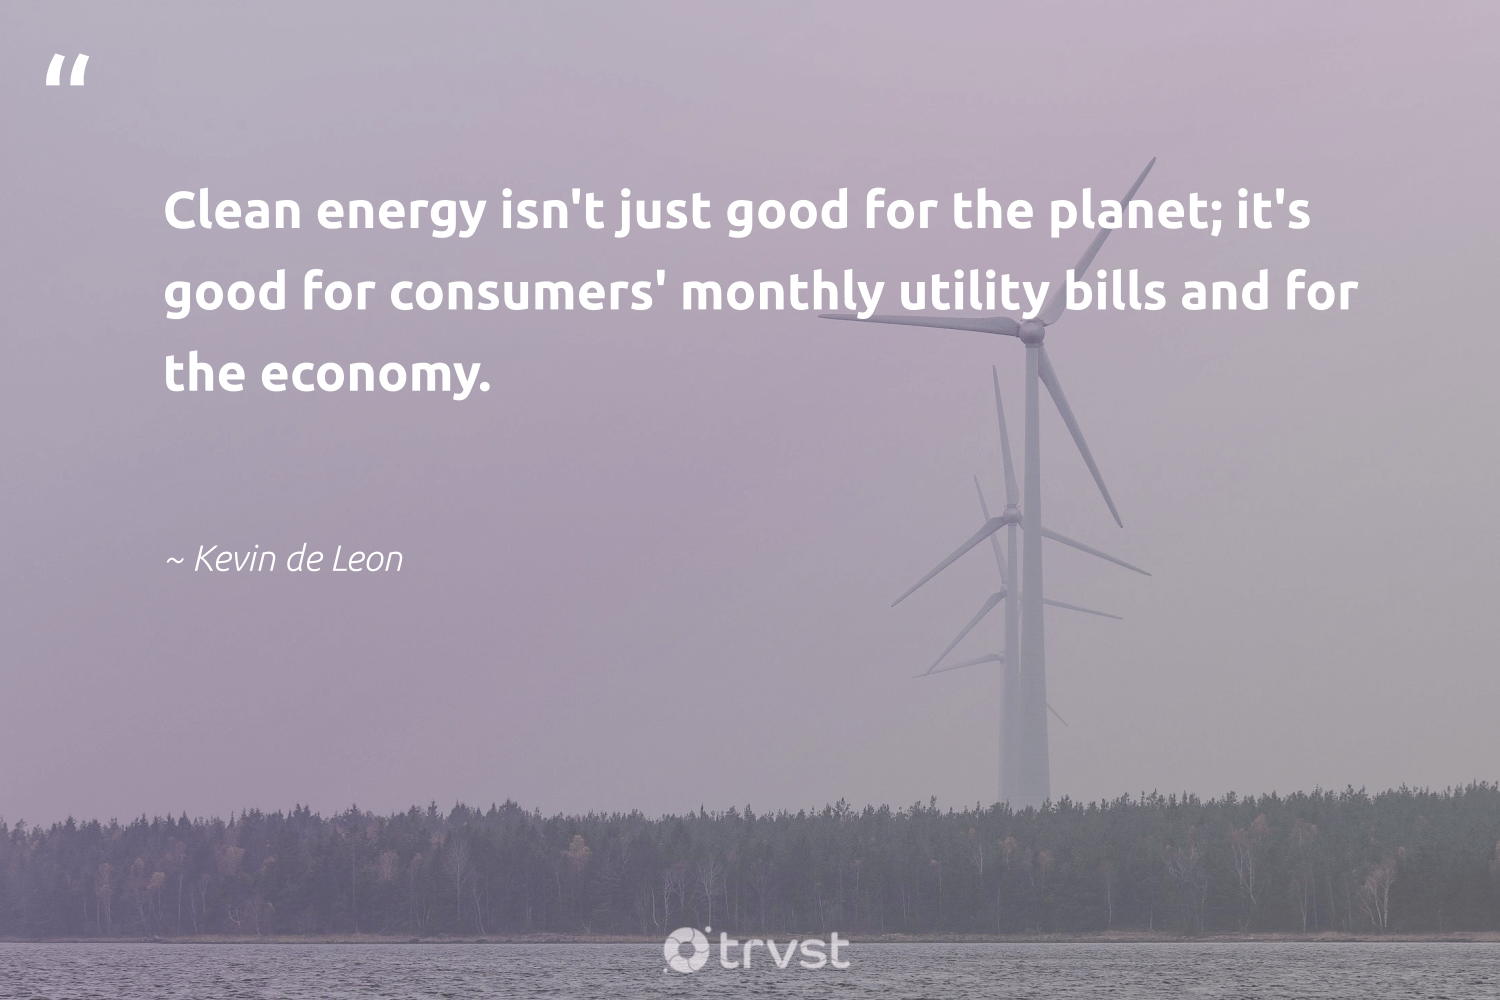 """""""Clean energy isn't just good for the planet; it's good for consumers' monthly utility bills and for the economy.""""  - Kevin de Leon #trvst #quotes #renewableenergy #energy #cleanenergy #climatechange #green #collectiveaction #lowcarbon #greenlife #environment #bethechange"""